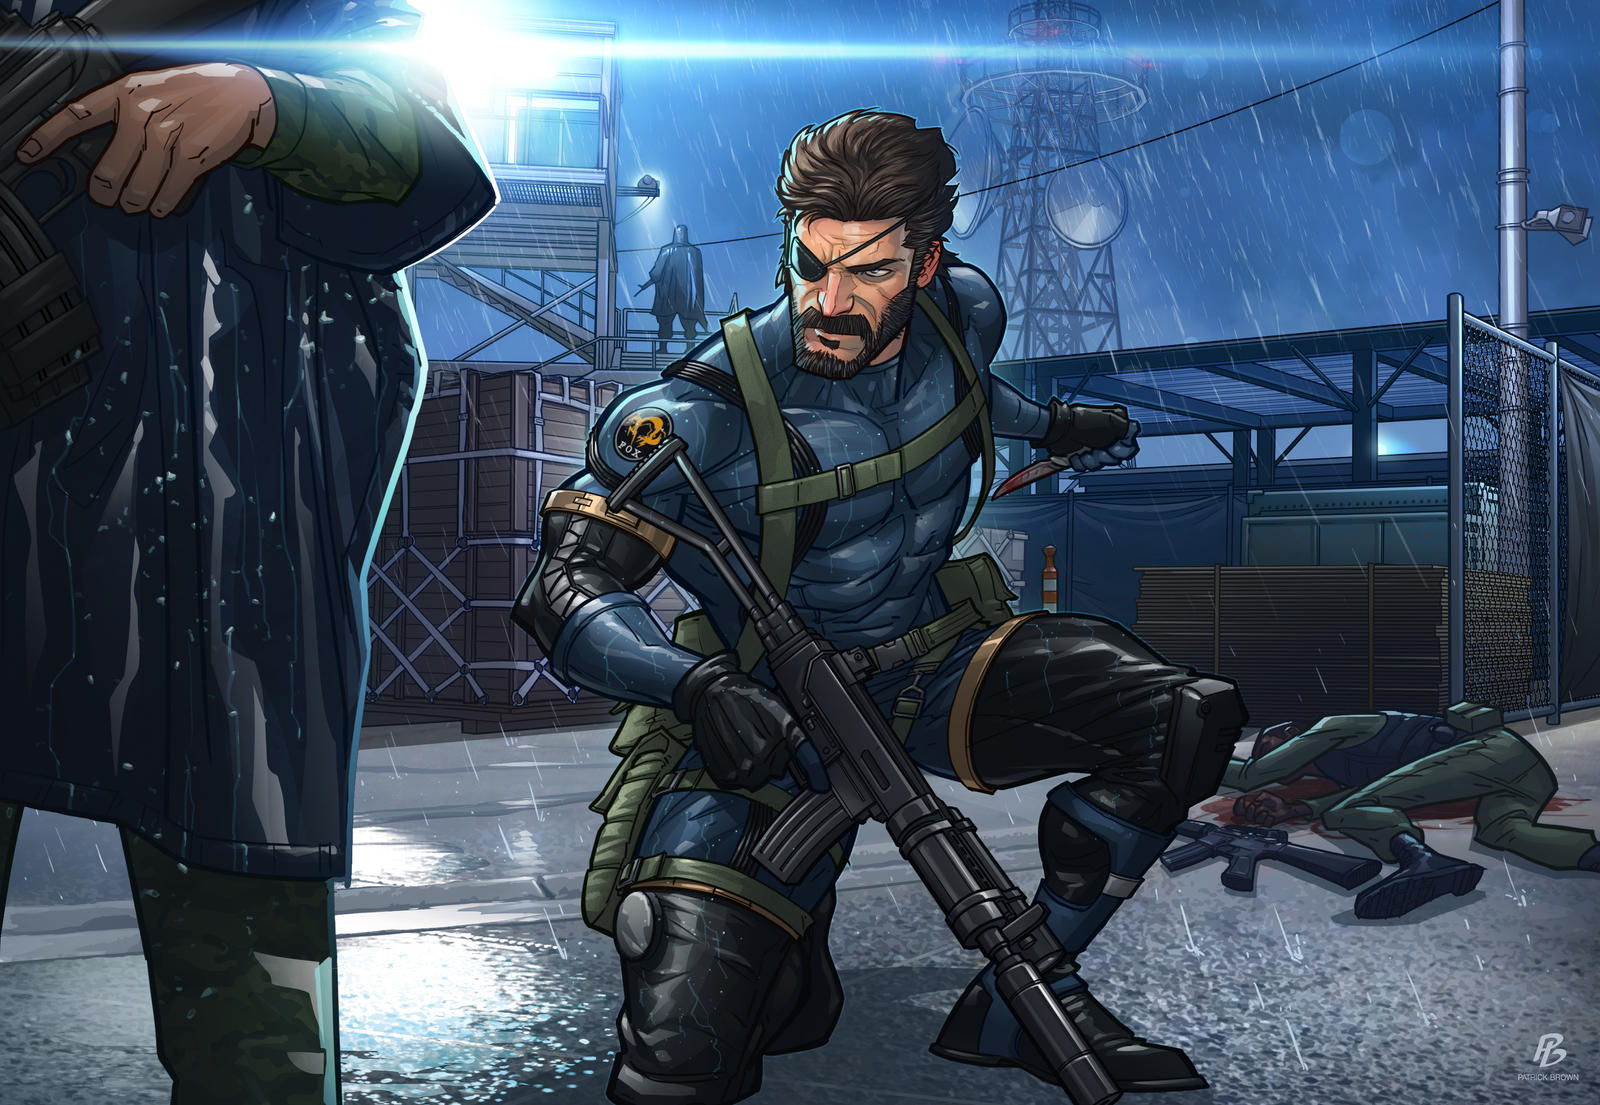 Metal Gear Solid V: Ground Zeroes by P. Brown